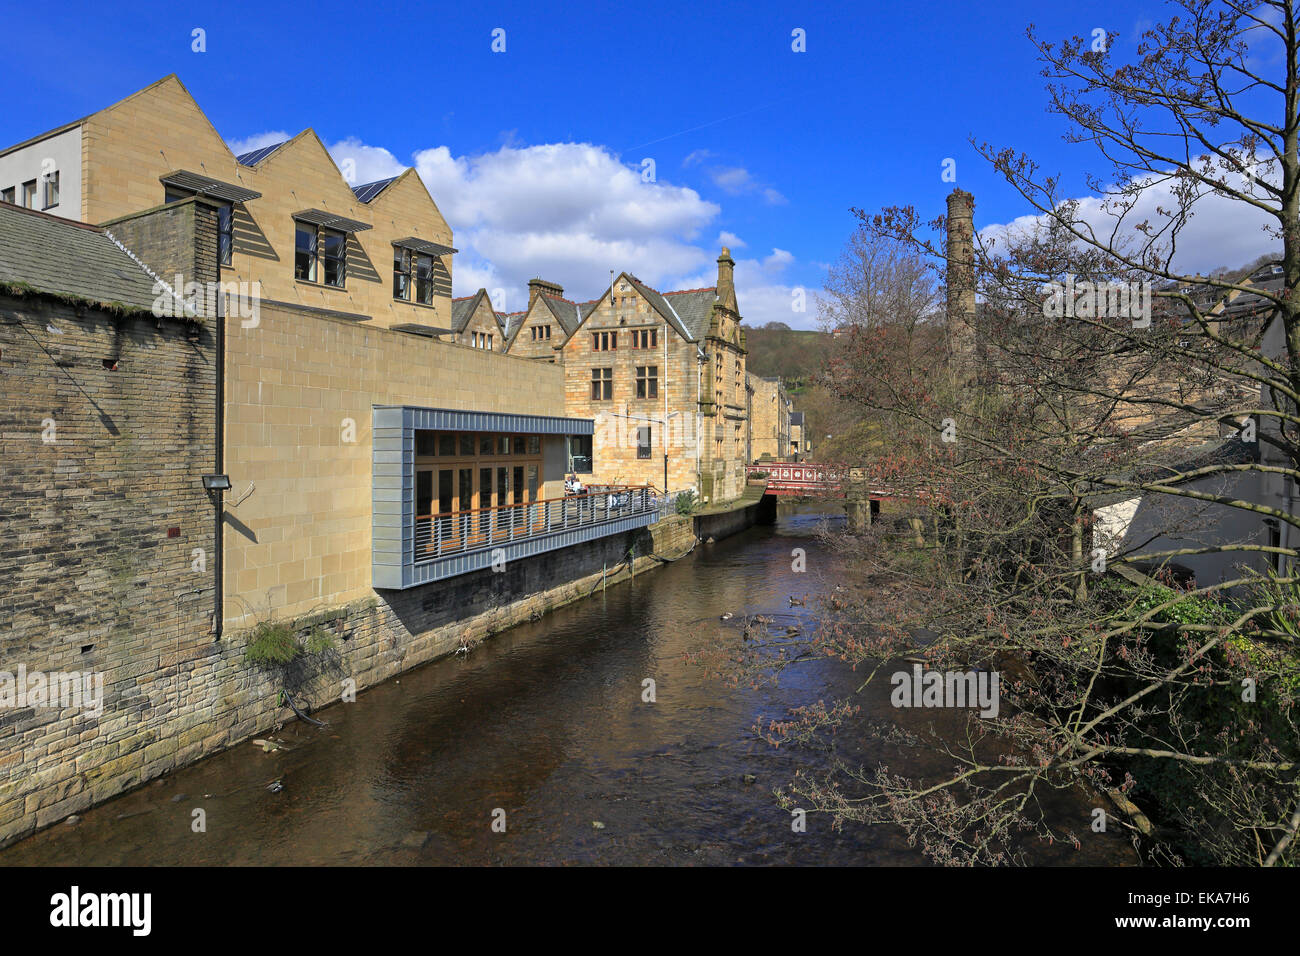 Old and new Town Hall buildings by Hebden Water, Hebden Bridge, West Yorkshire, England, UK. - Stock Image